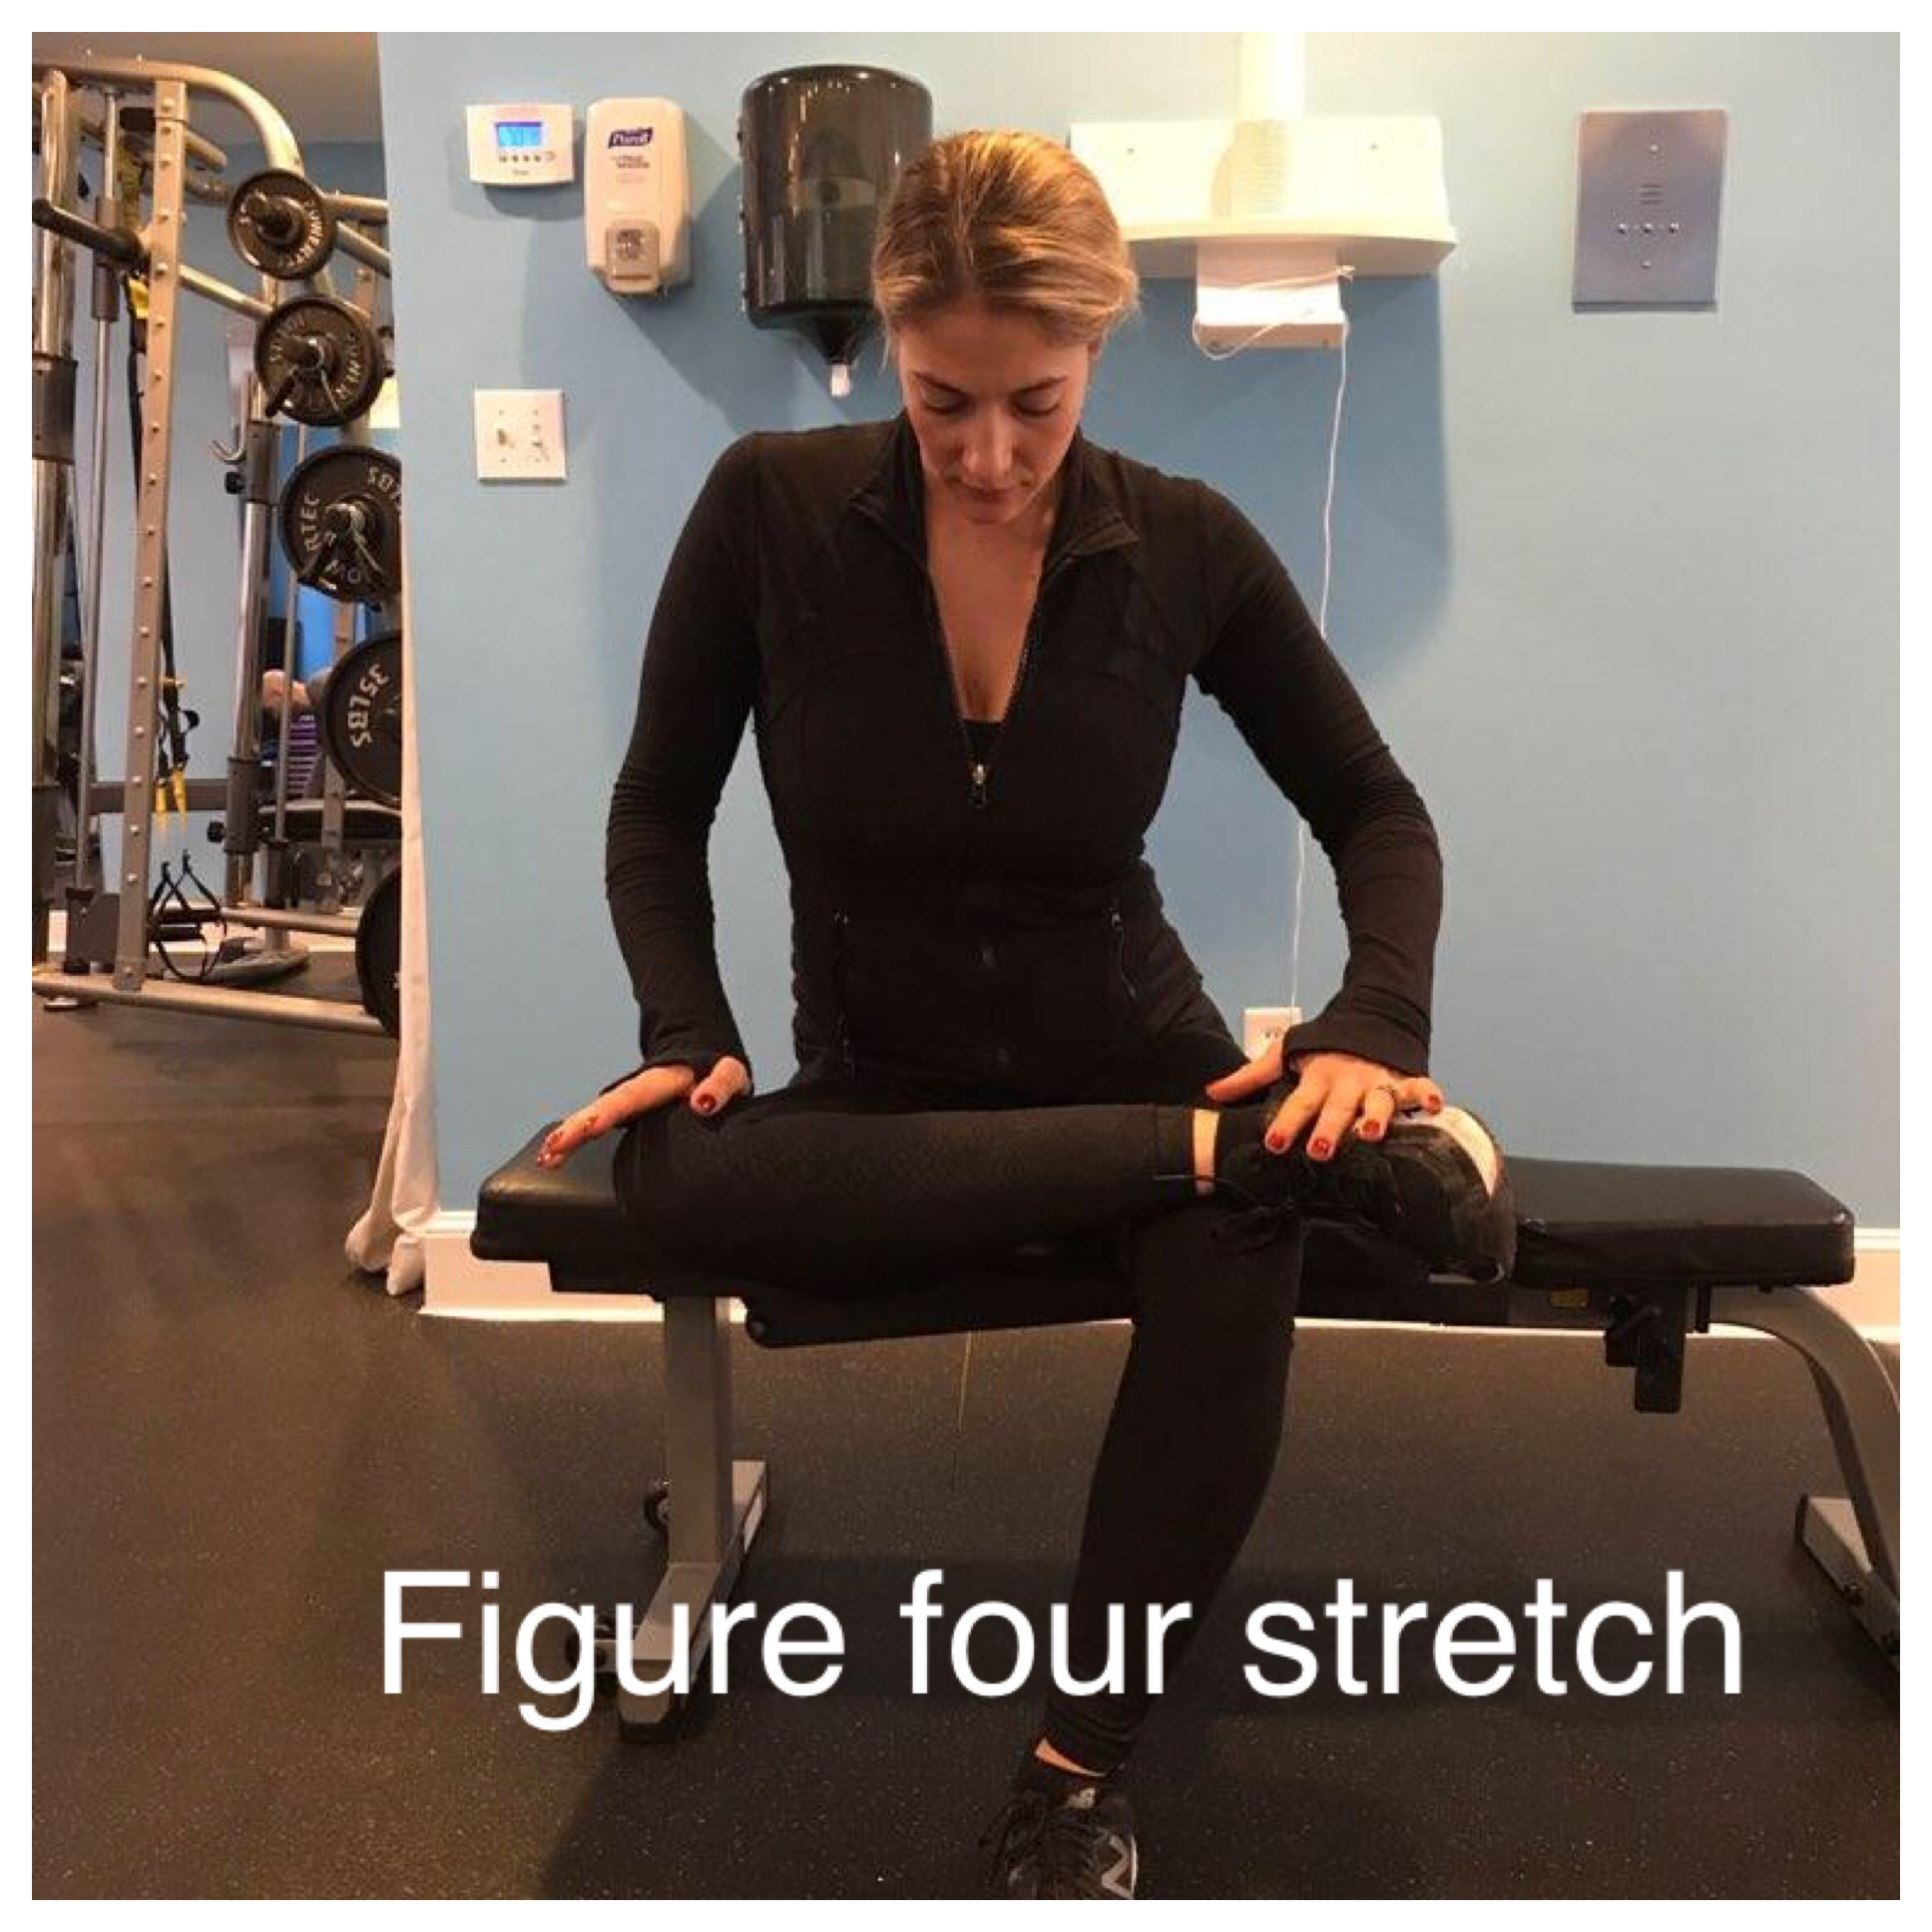 STRETCH 4: FIGURE FOR STRETCH. CAN BE DONE SEATED OR STANDING